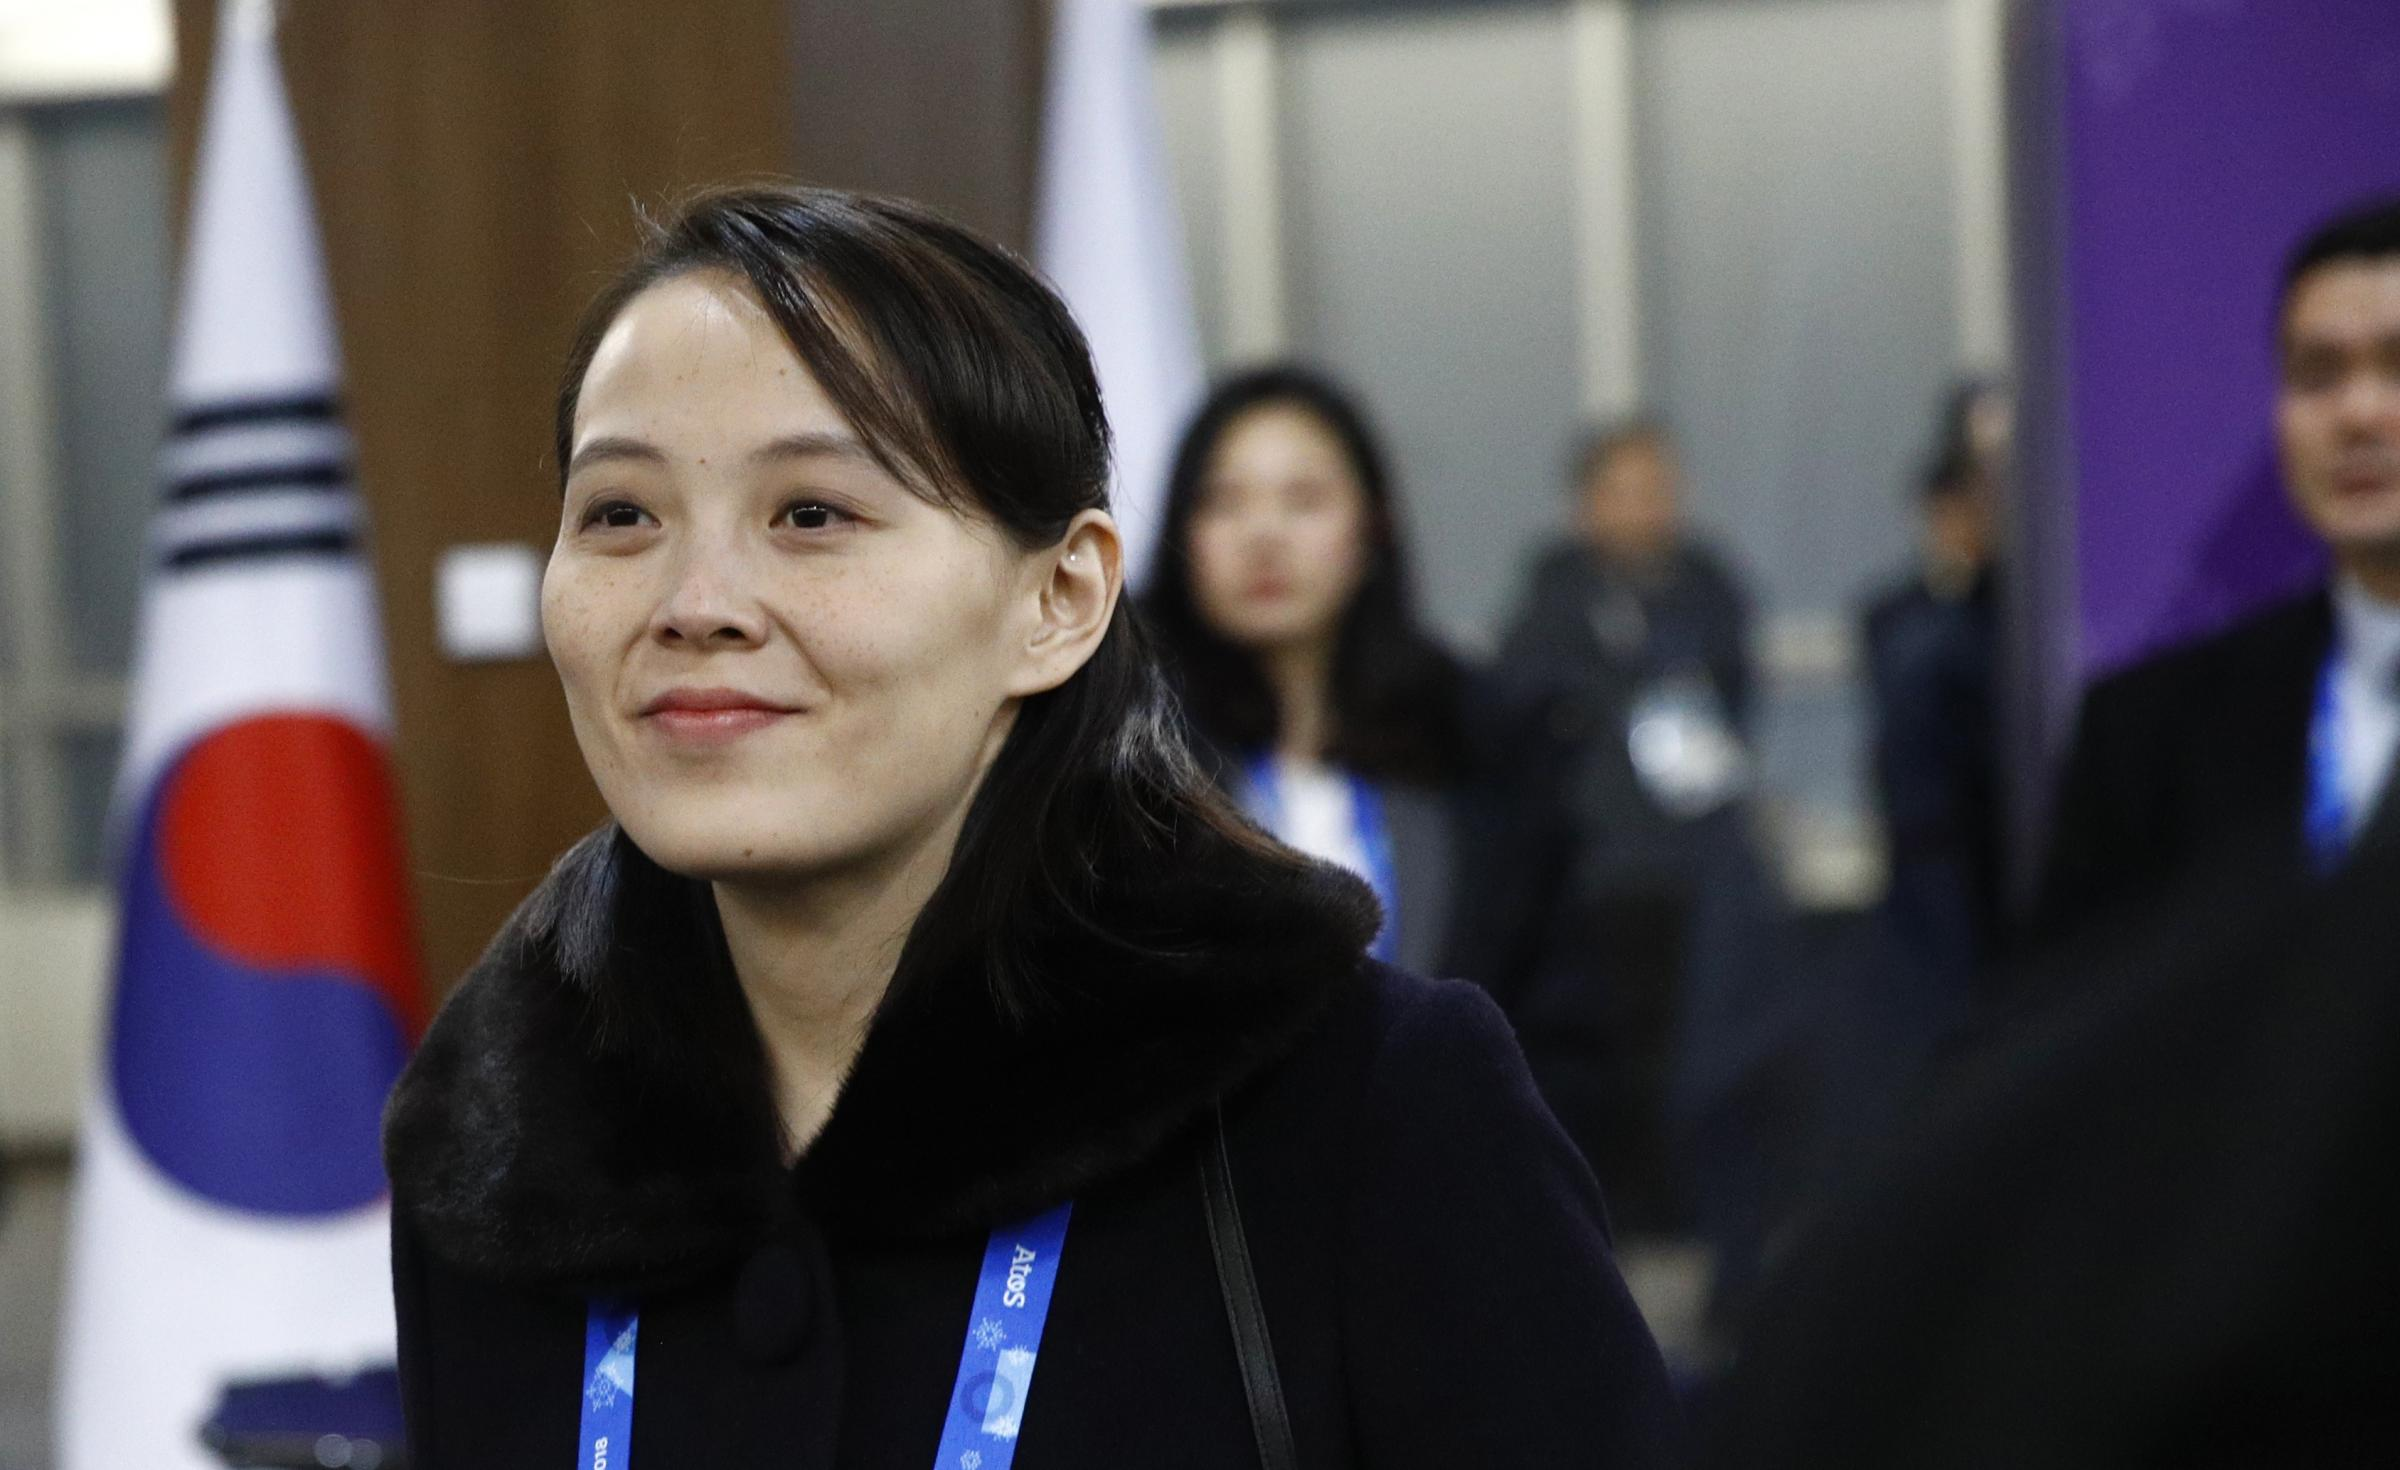 Kim Yo Jong, sister of North Korean leader Kim Jong Un, arrives at the opening ceremony of the Pyeongchang. Photograph: Getty